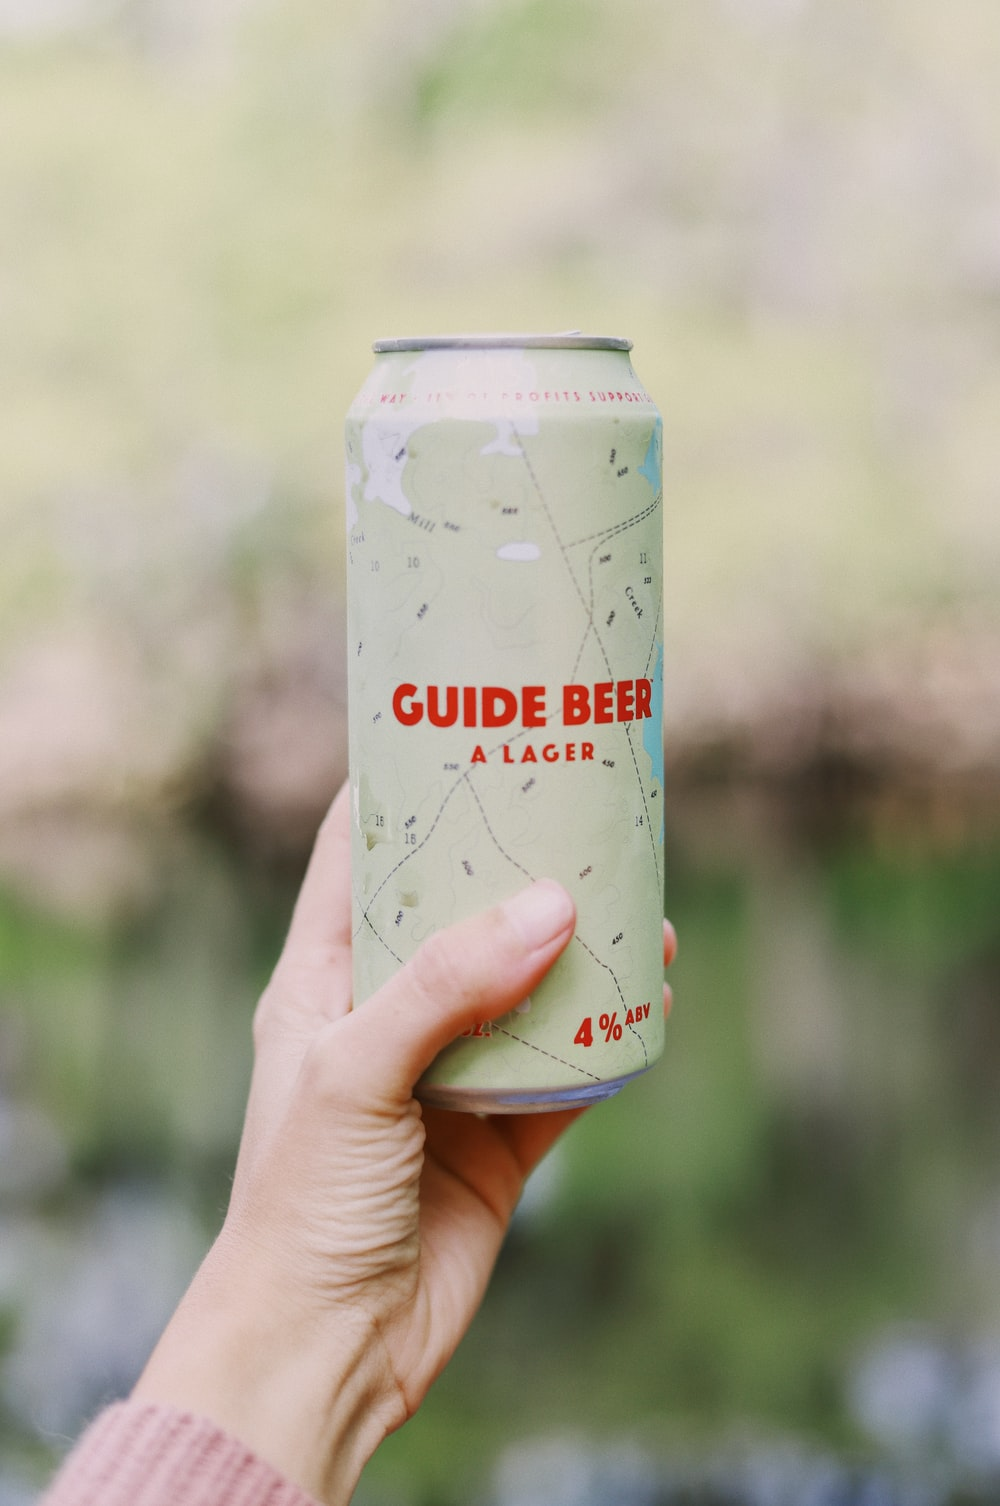 Guide Beer can